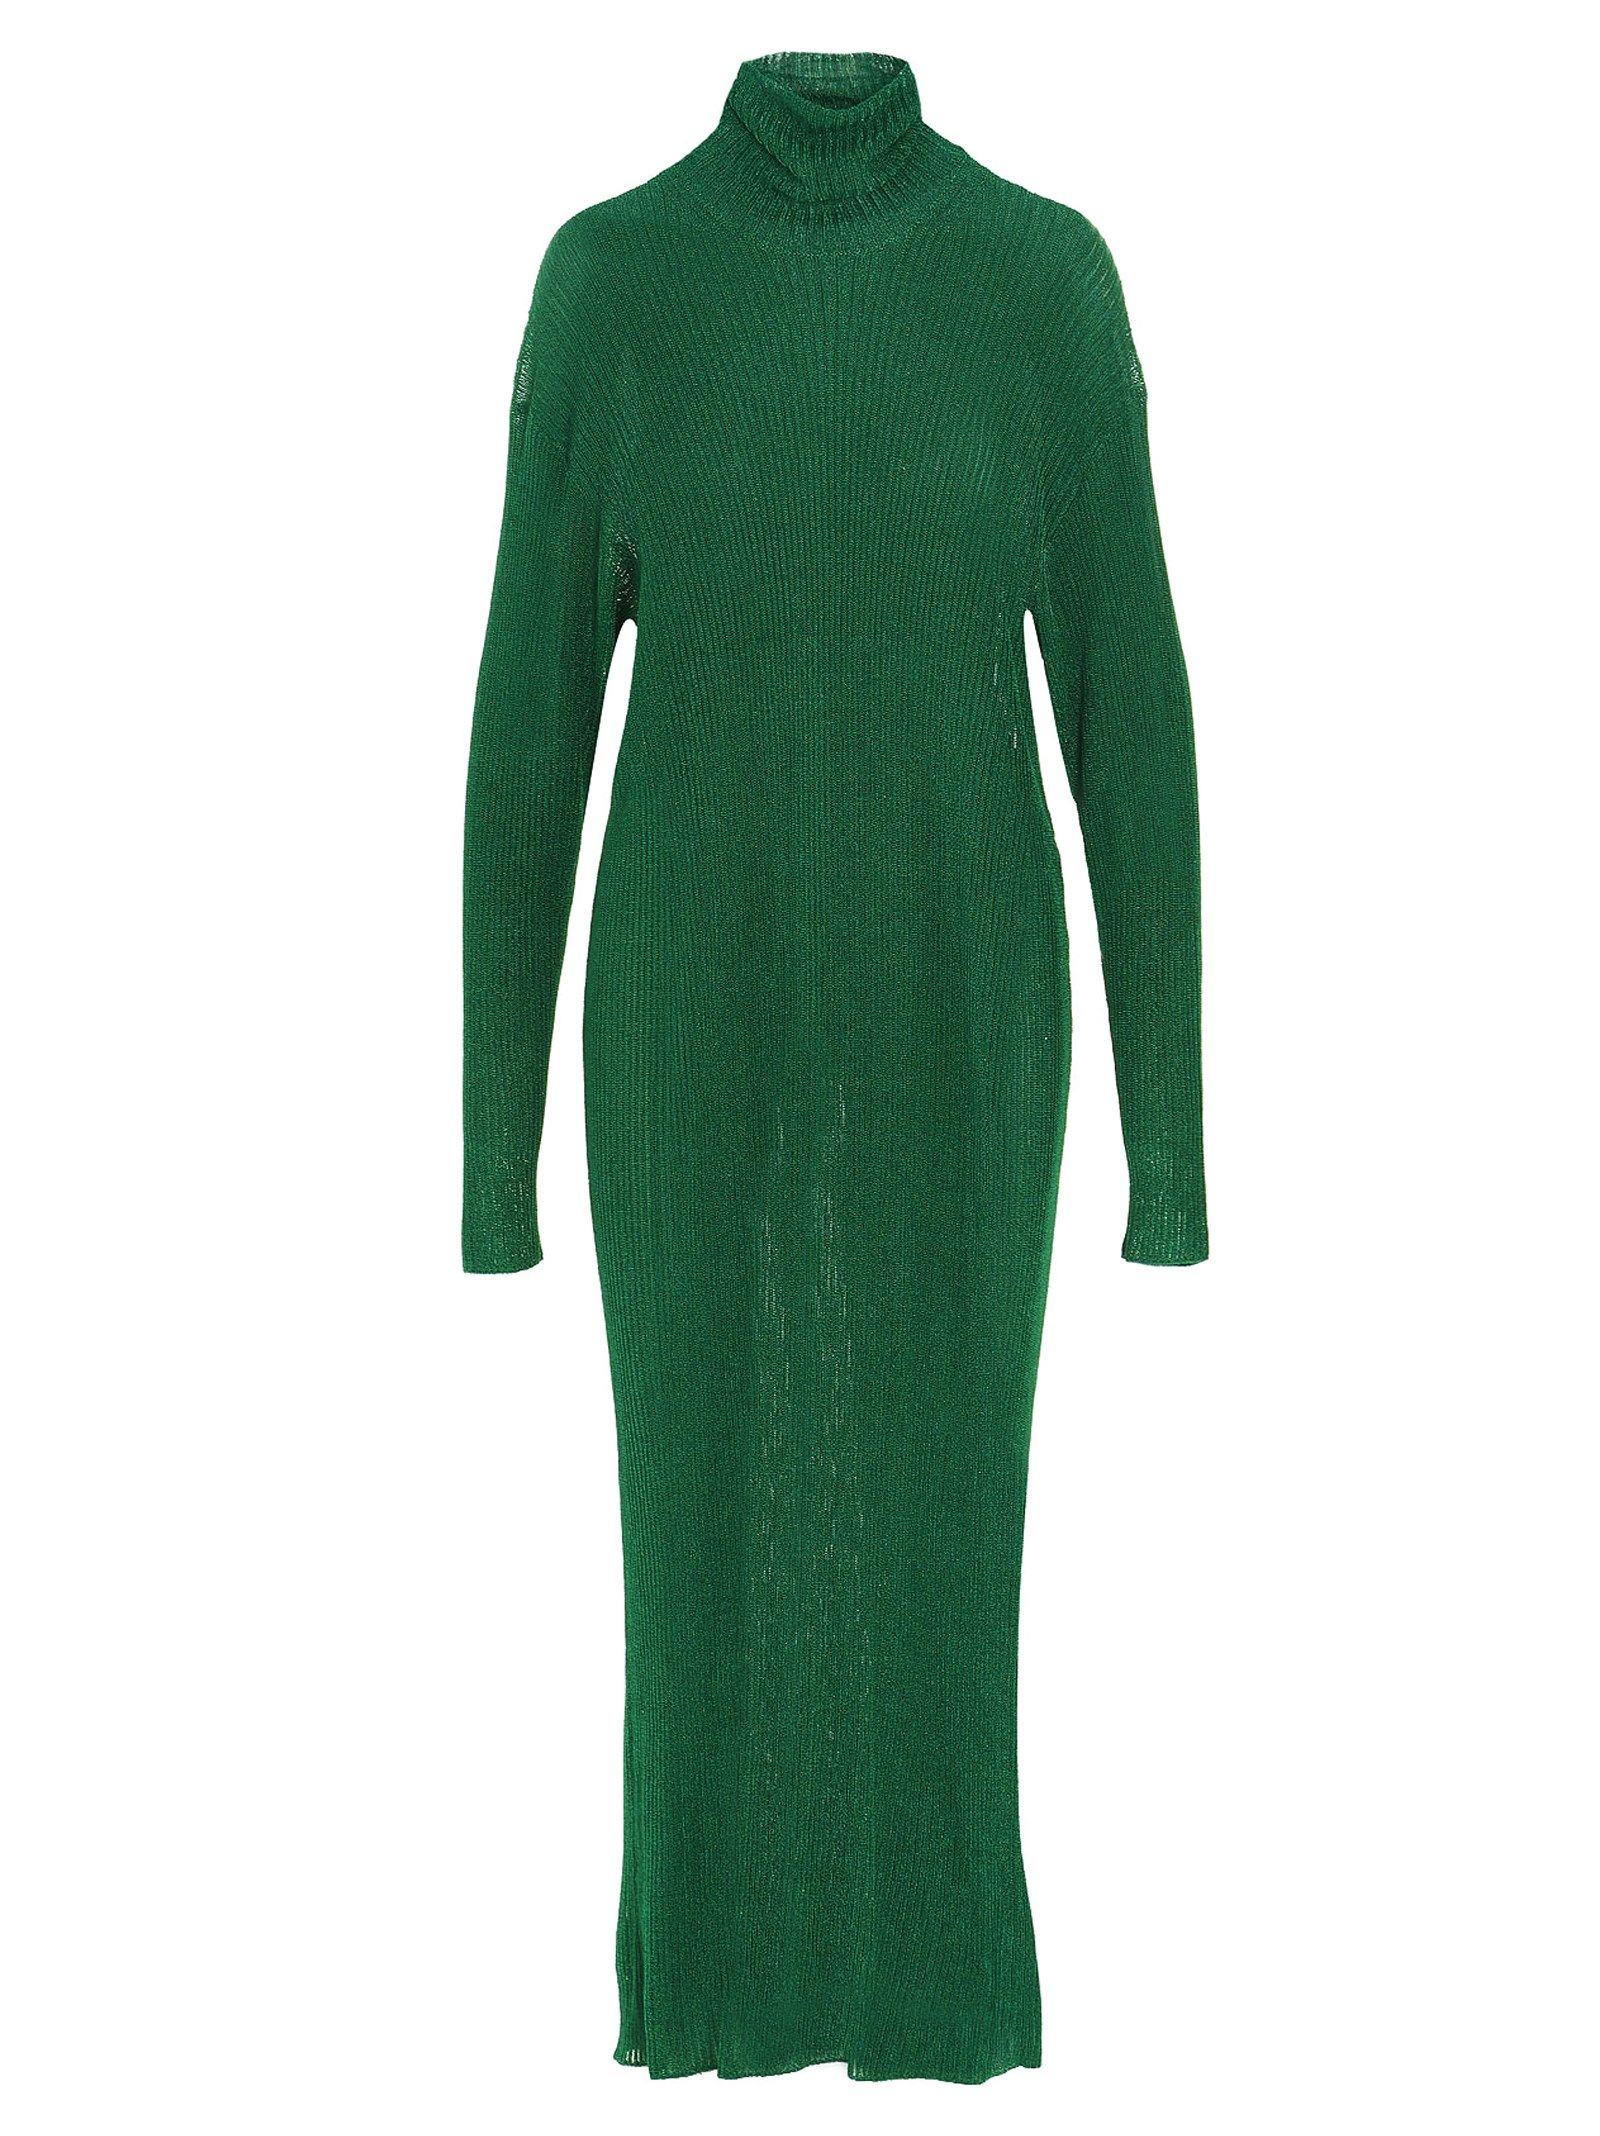 Balenciaga BALENCIAGA WOMEN'S GREEN OTHER MATERIALS DRESS